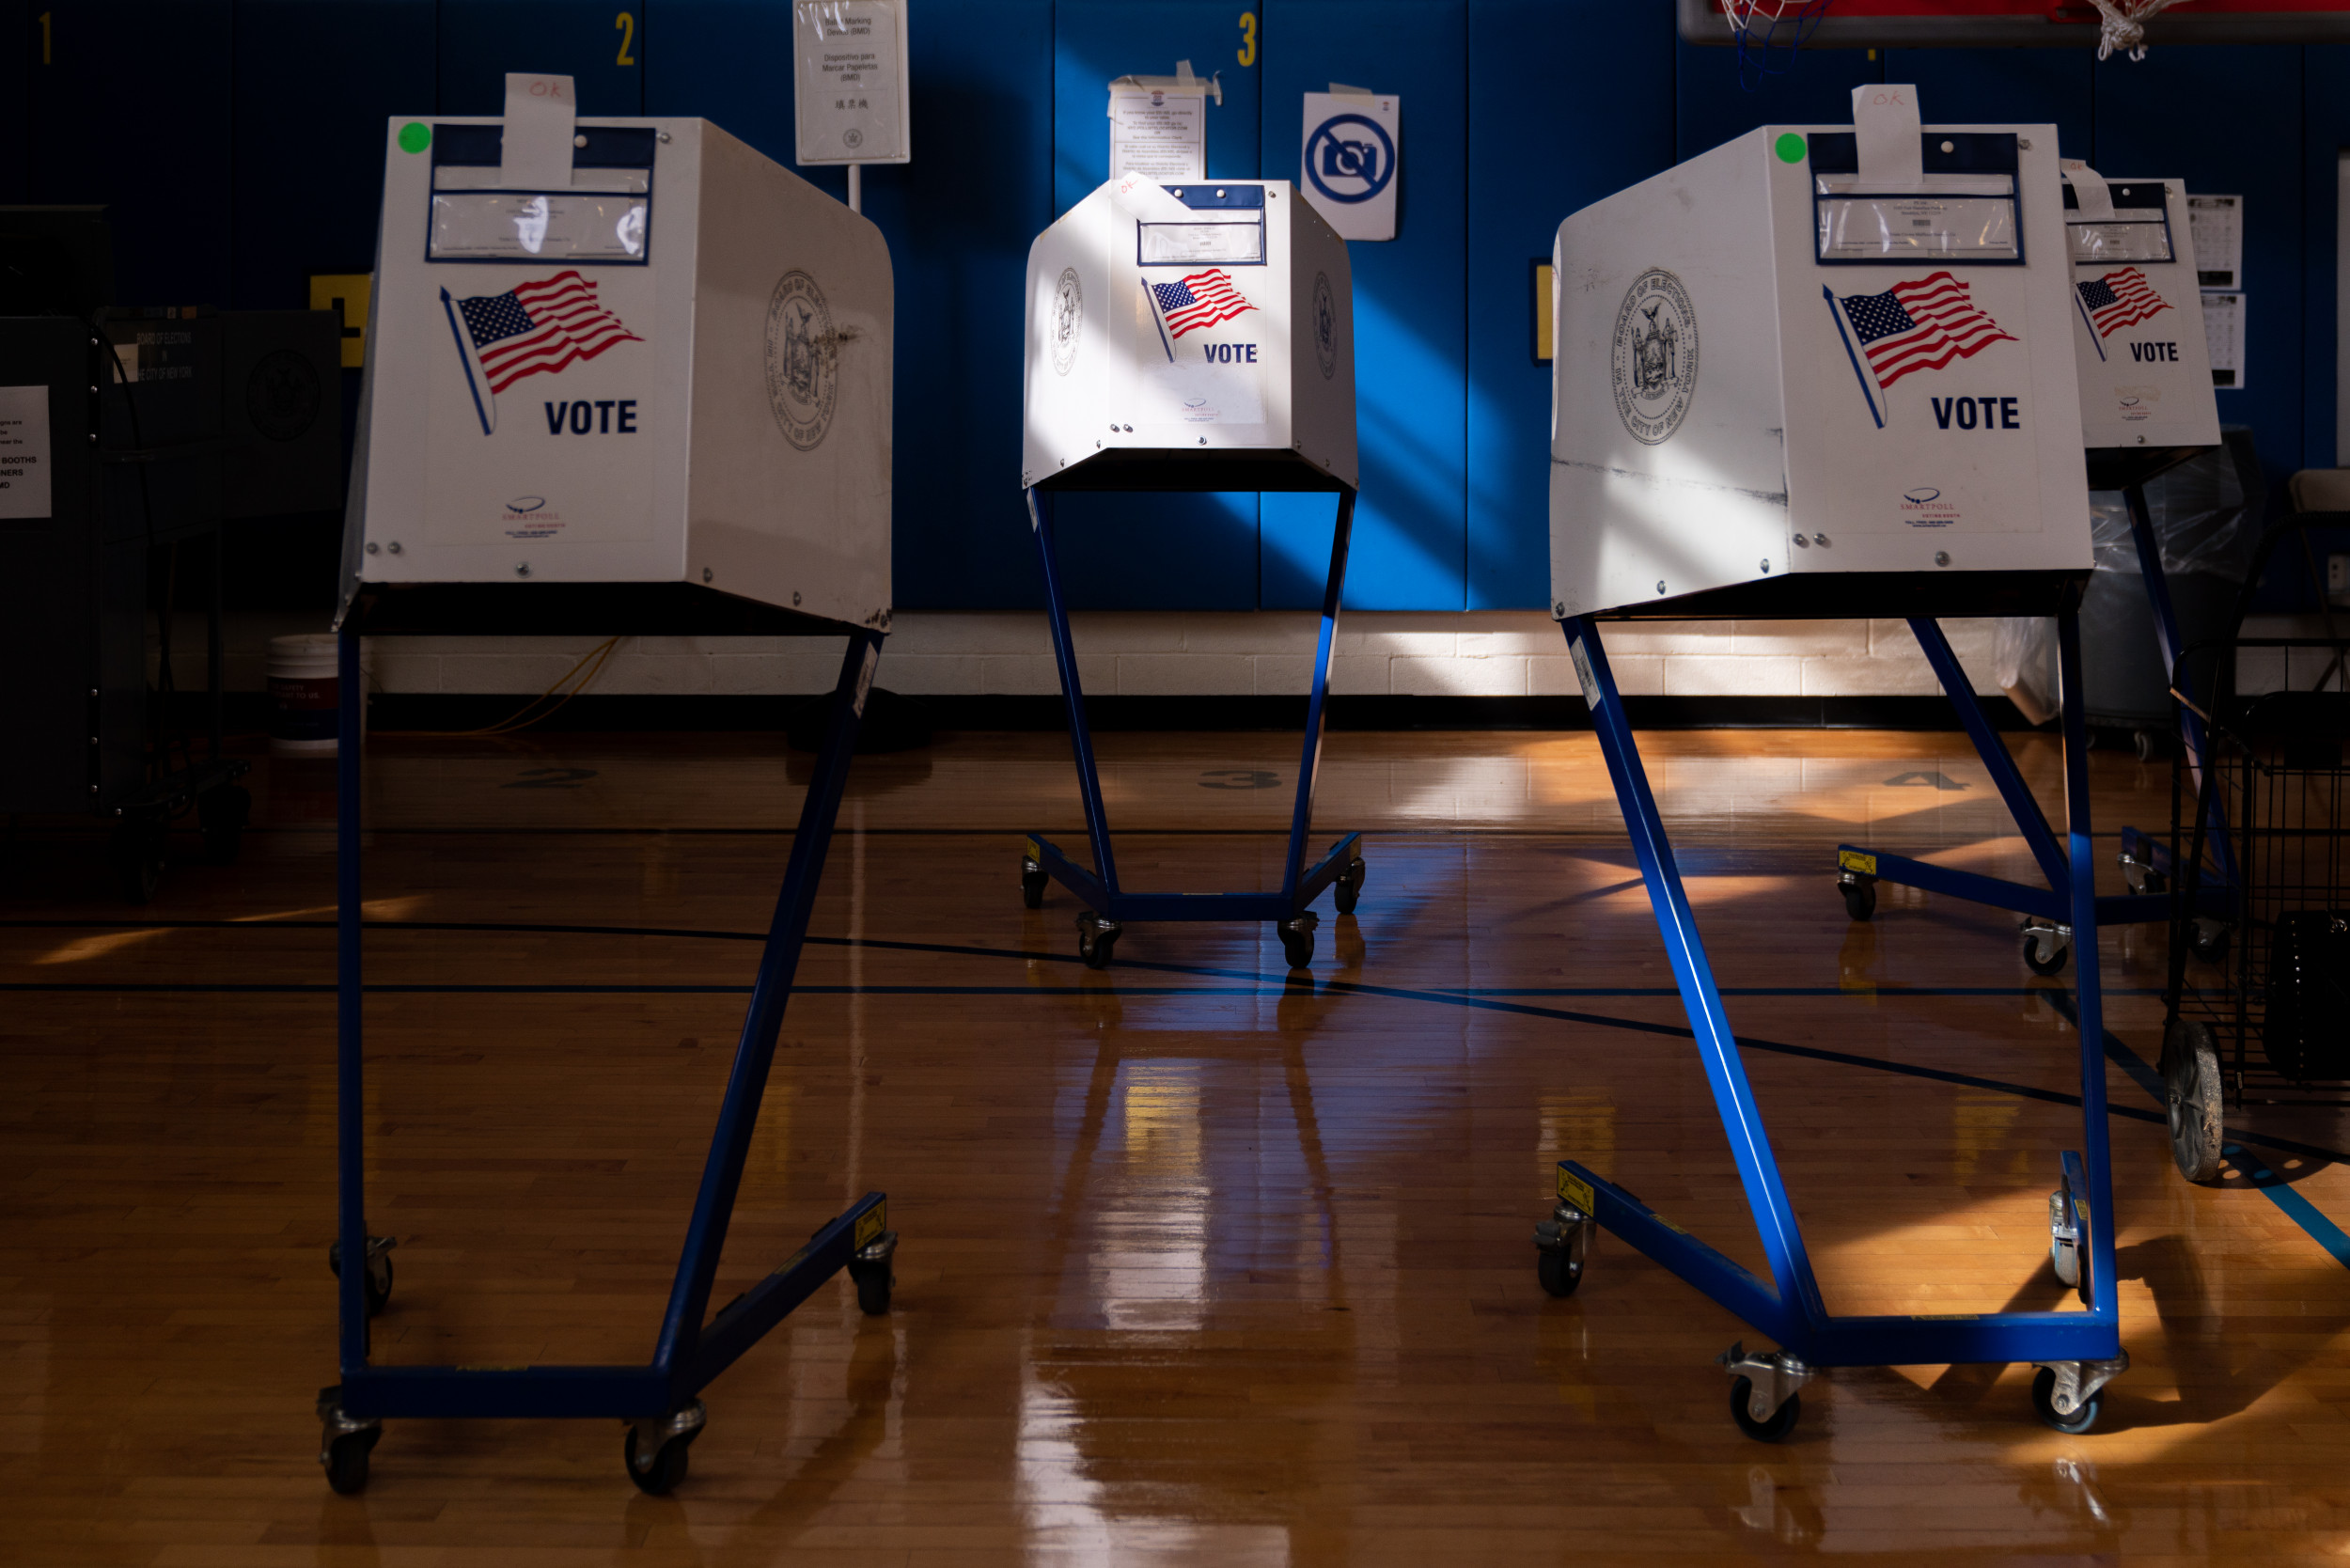 Michigan GOP election officials want to rescind votes certifying results in late night reversal